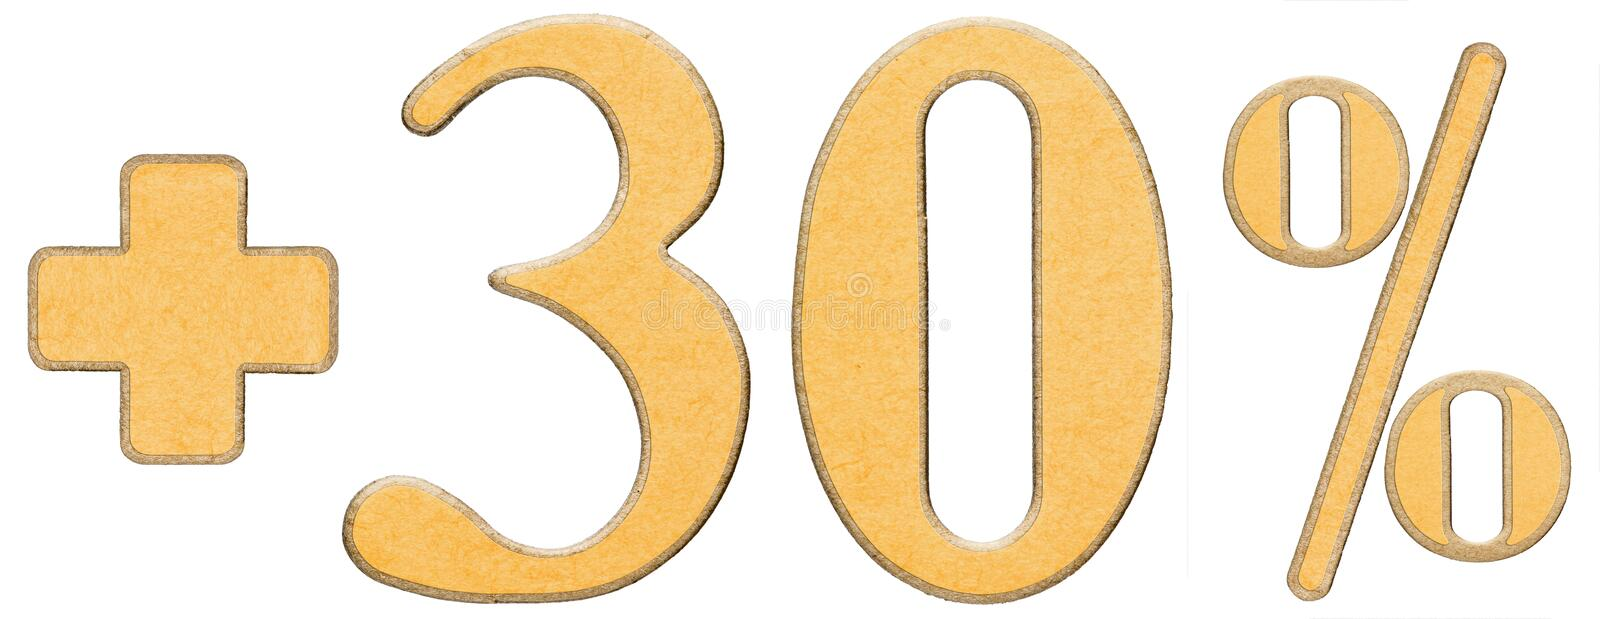 Download Percent Benefits, Plus 30 Thirty Percent, Numerals Isolated On W Stock Image - Image: 83713457